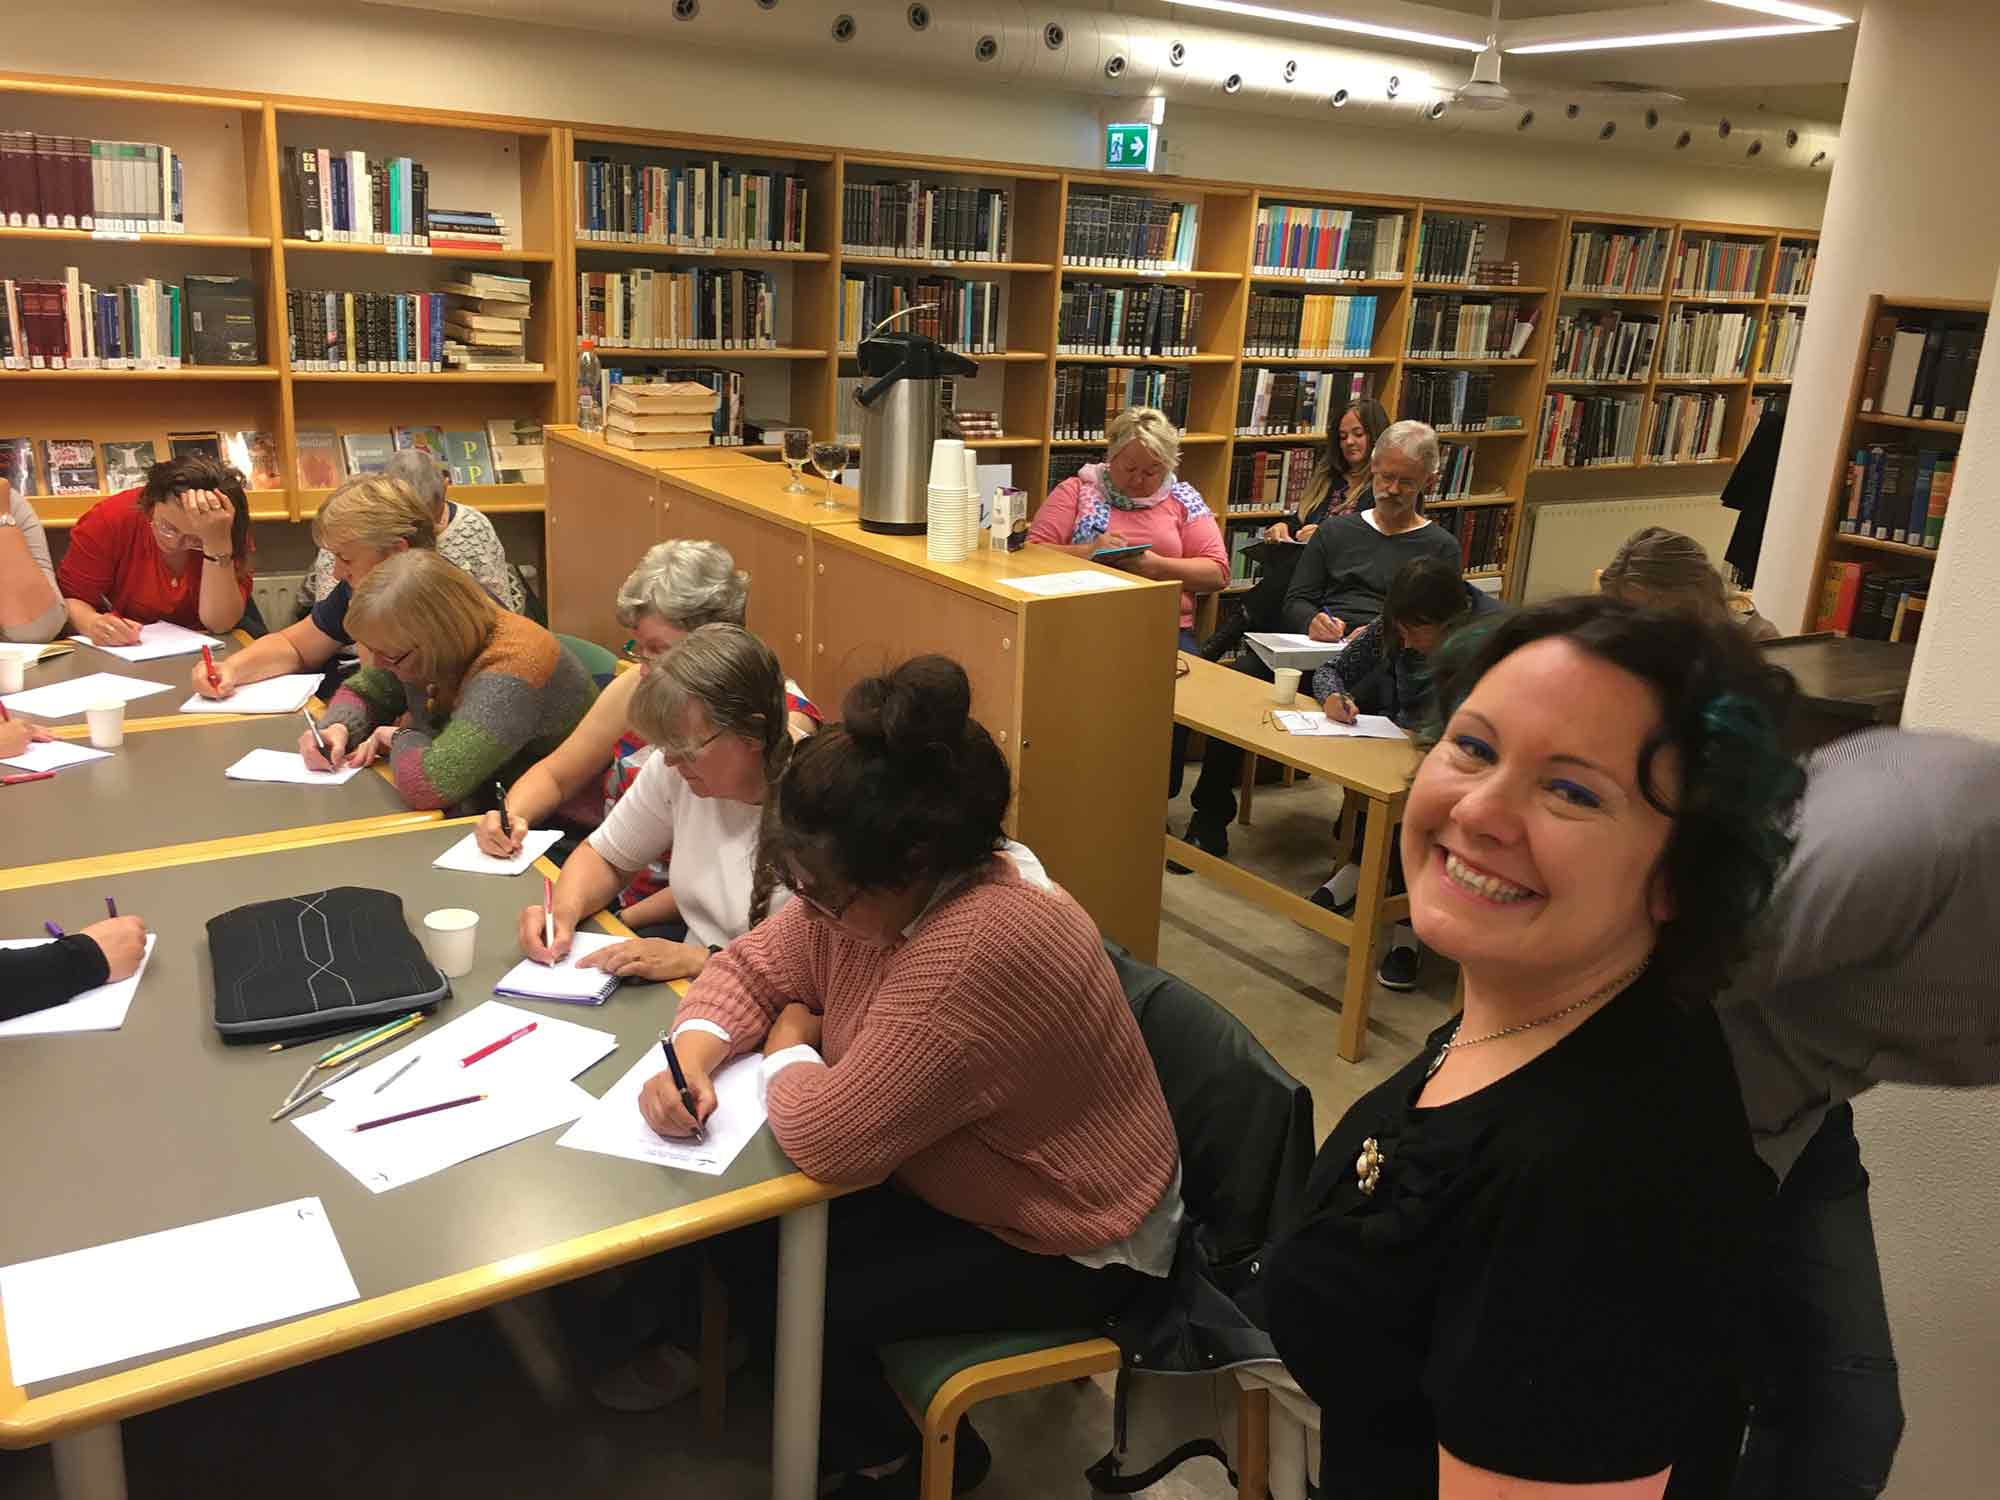 Creative writing with Elizabeth Rose Murray at local library